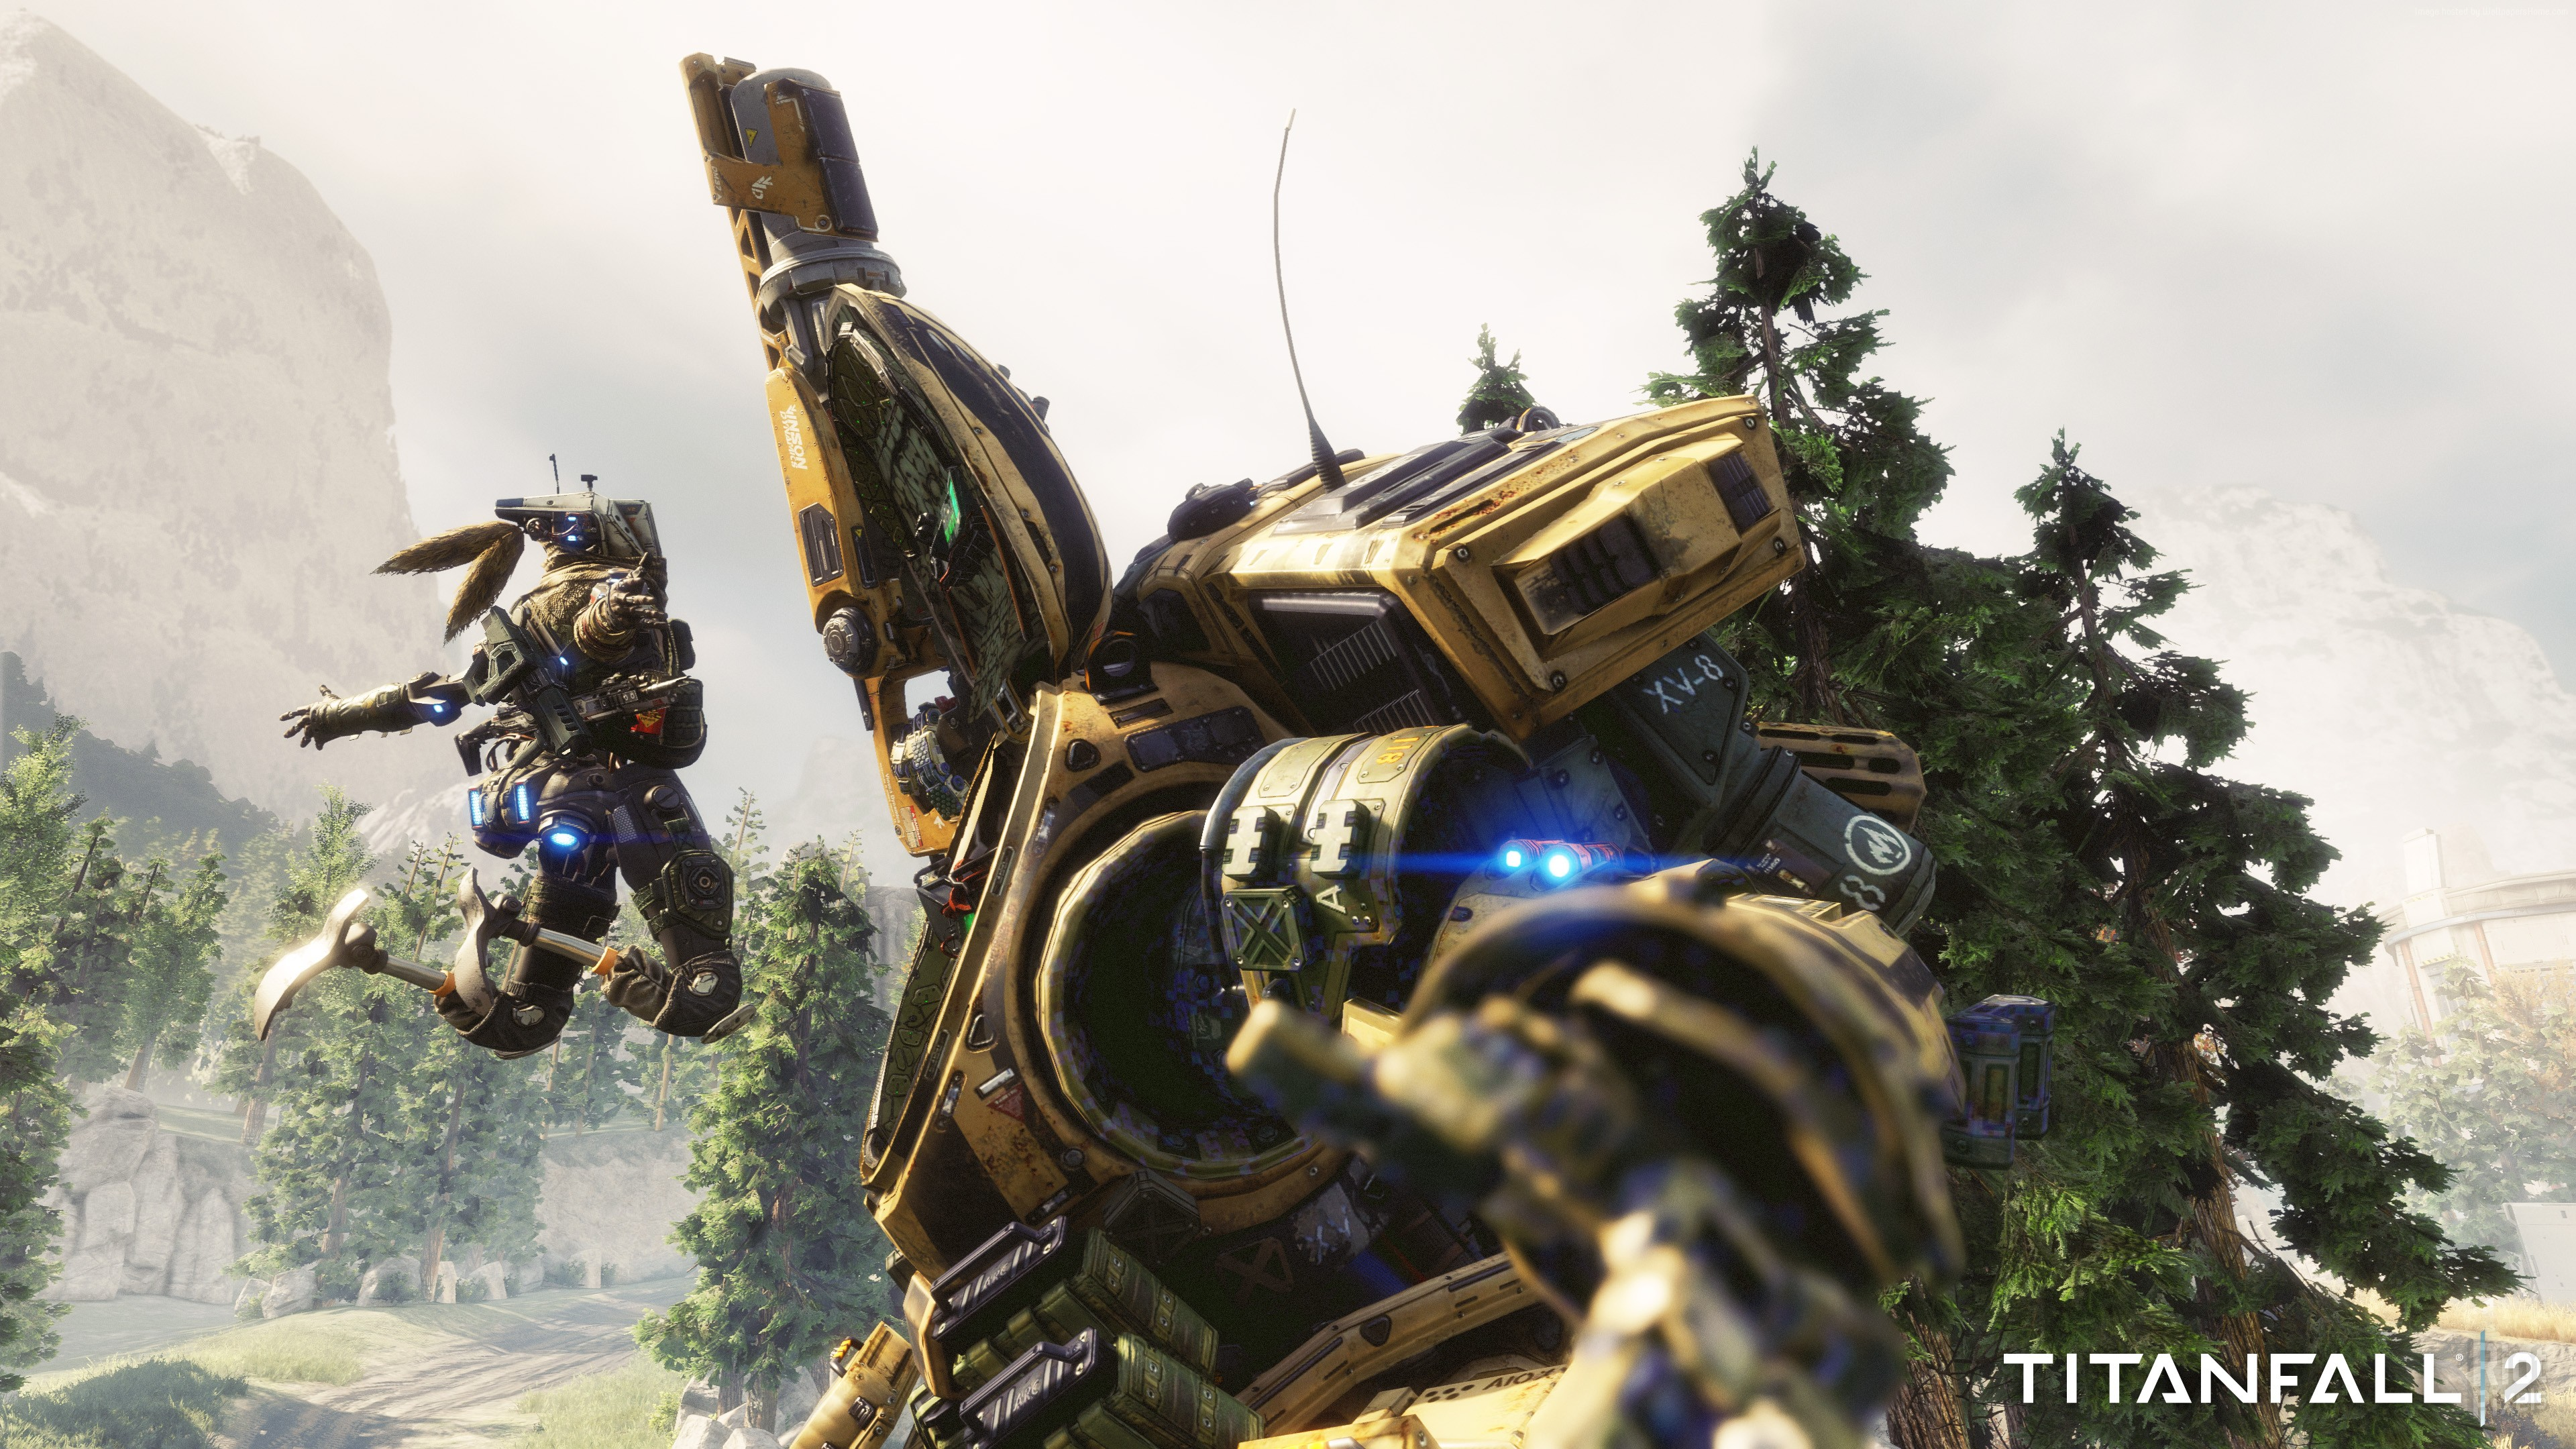 titanfall 2 4k widescreen wallpaper 458